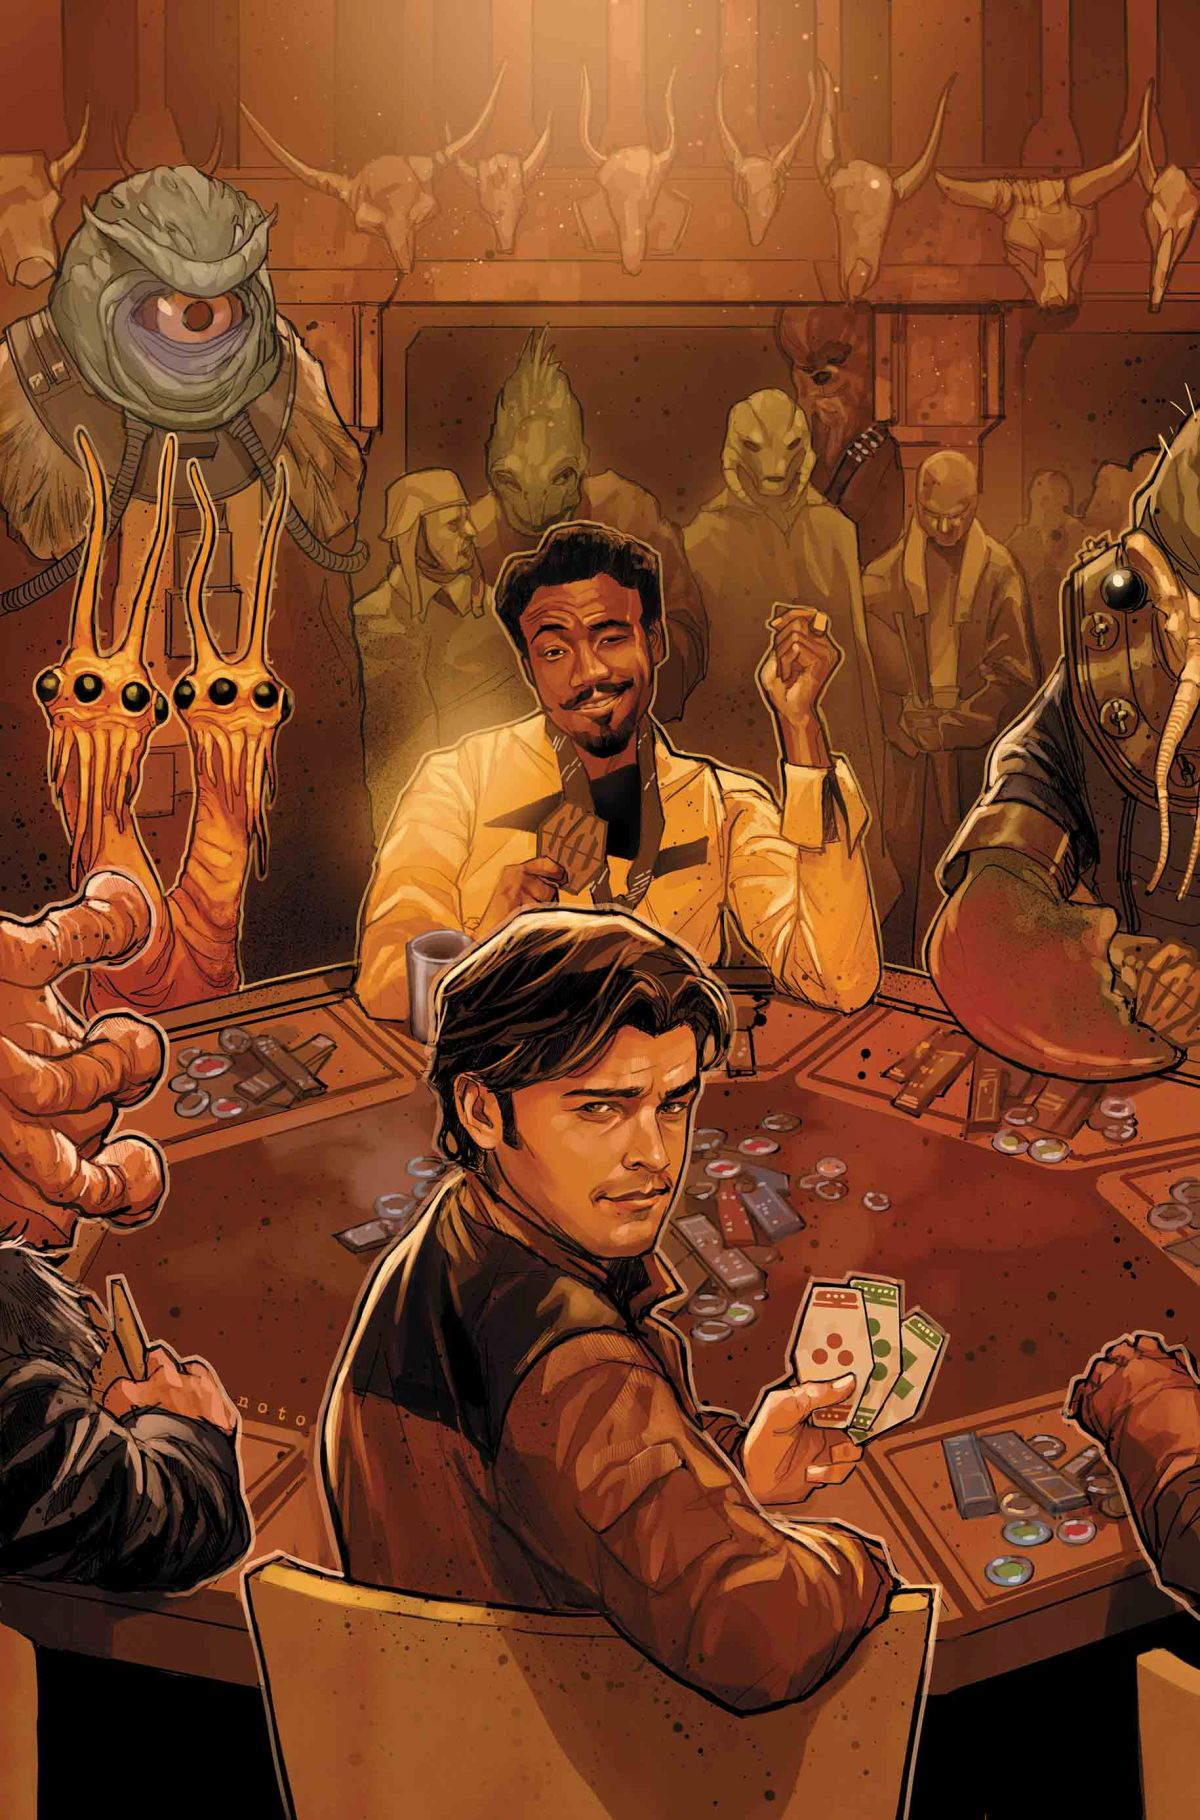 SOLO: A STAR WARS STORY ADAPTATION #3 (of 5)